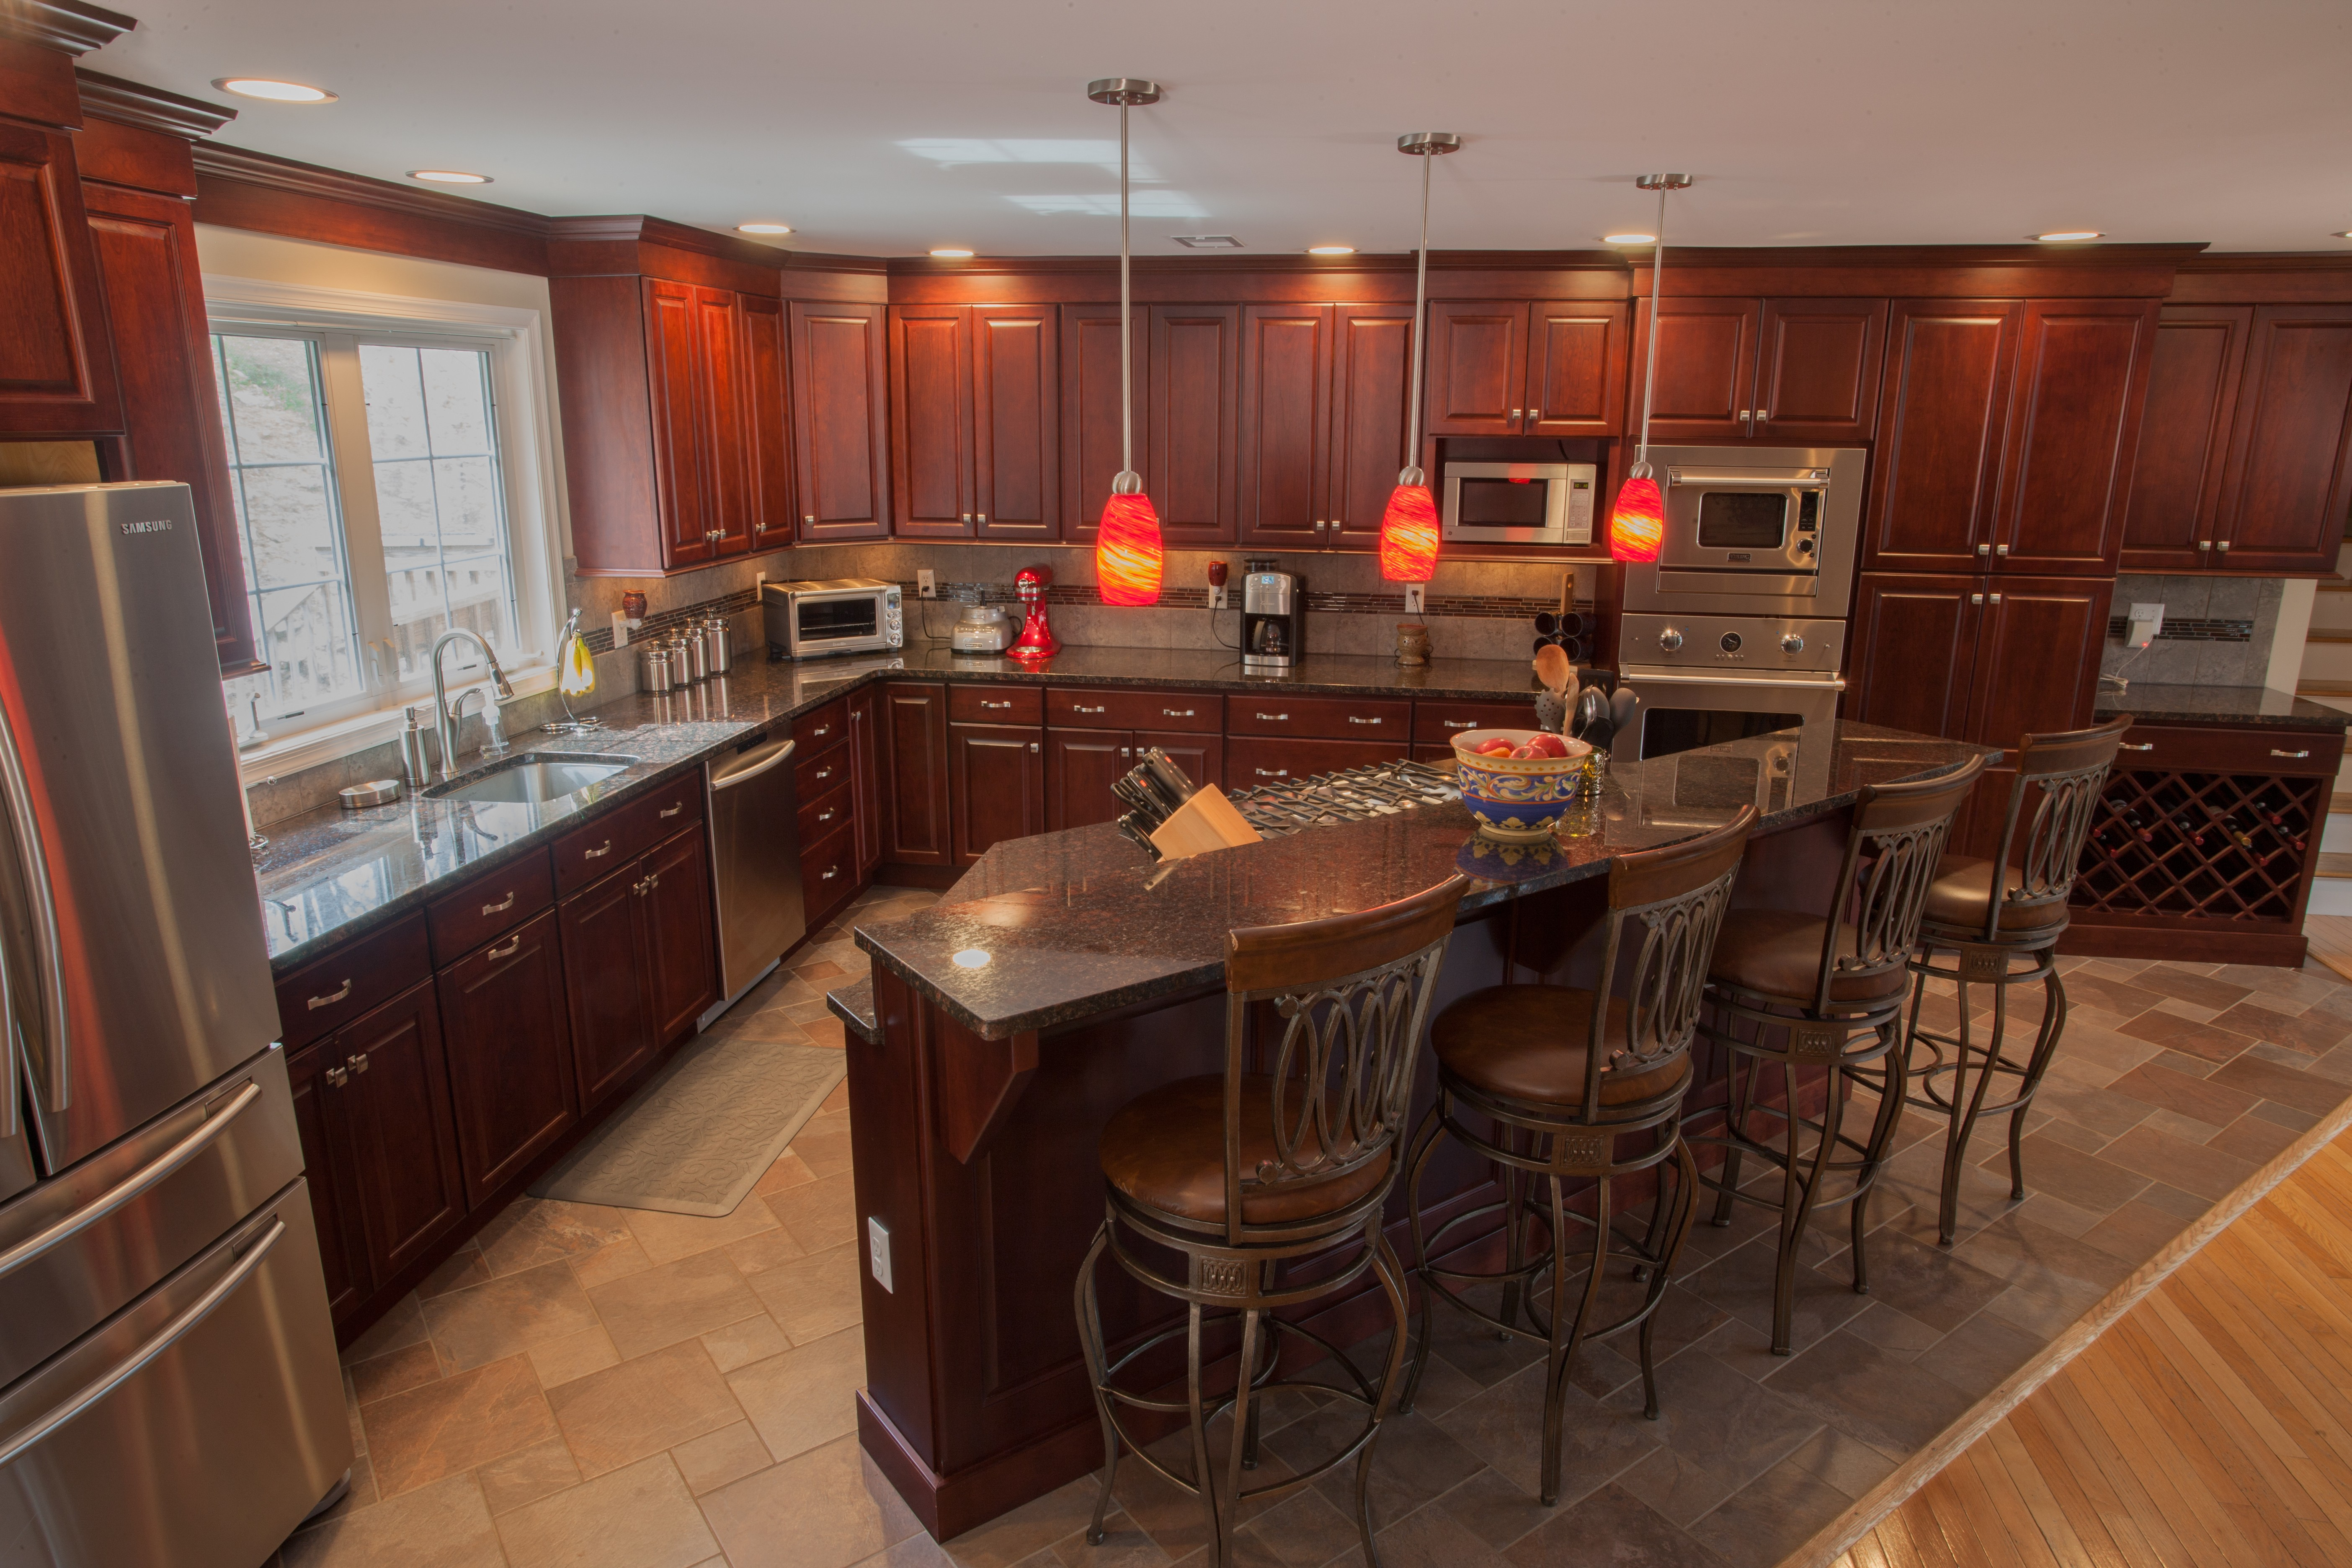 Tan Brown Is A Dark Black And Brown Natural Stone Countertop That Features  Large Burgundy Flecks Throughout. In This Kitchen, The Red Accents Of The  Granite ...